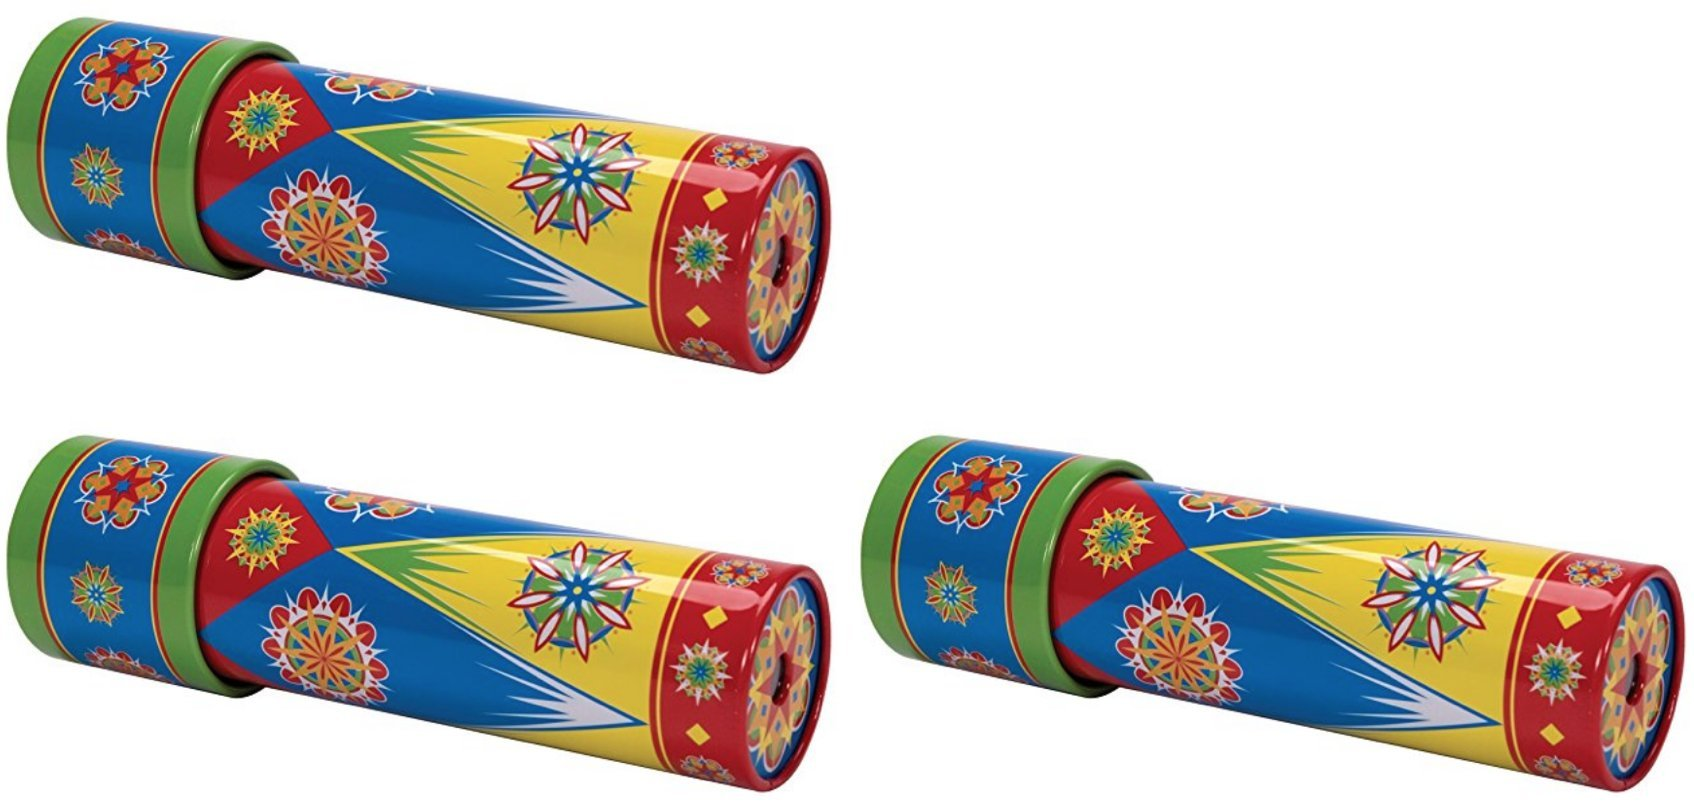 Schylling Classic Tin Kaleidoscope Party Set Bundle - 3 Pack For Ages 3+ Amaze your eyes with brilliant colors and patterns from our unique tin kaleidoscopes!